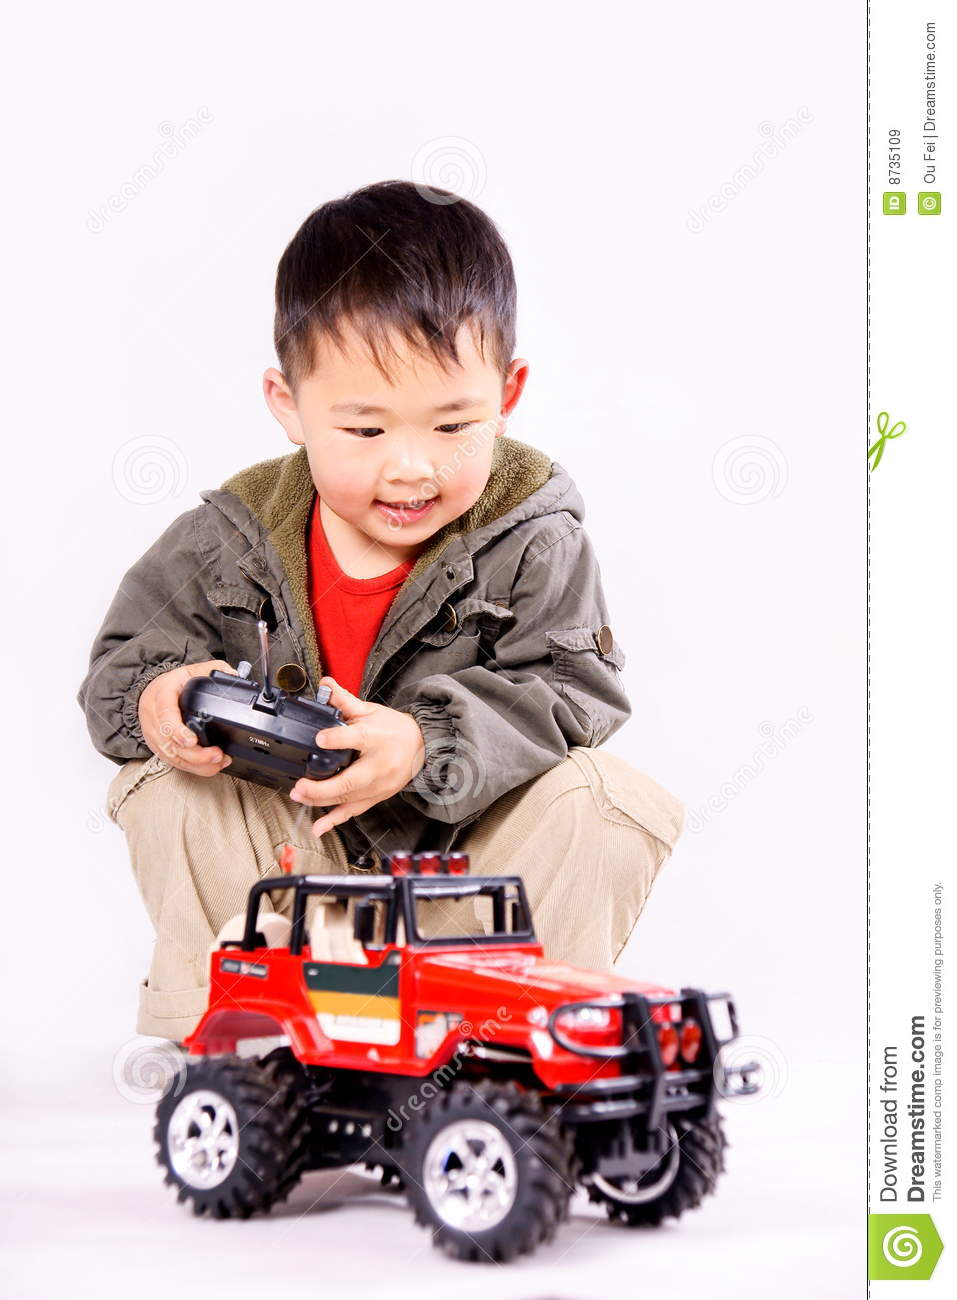 boy-remote-control-car-8735109